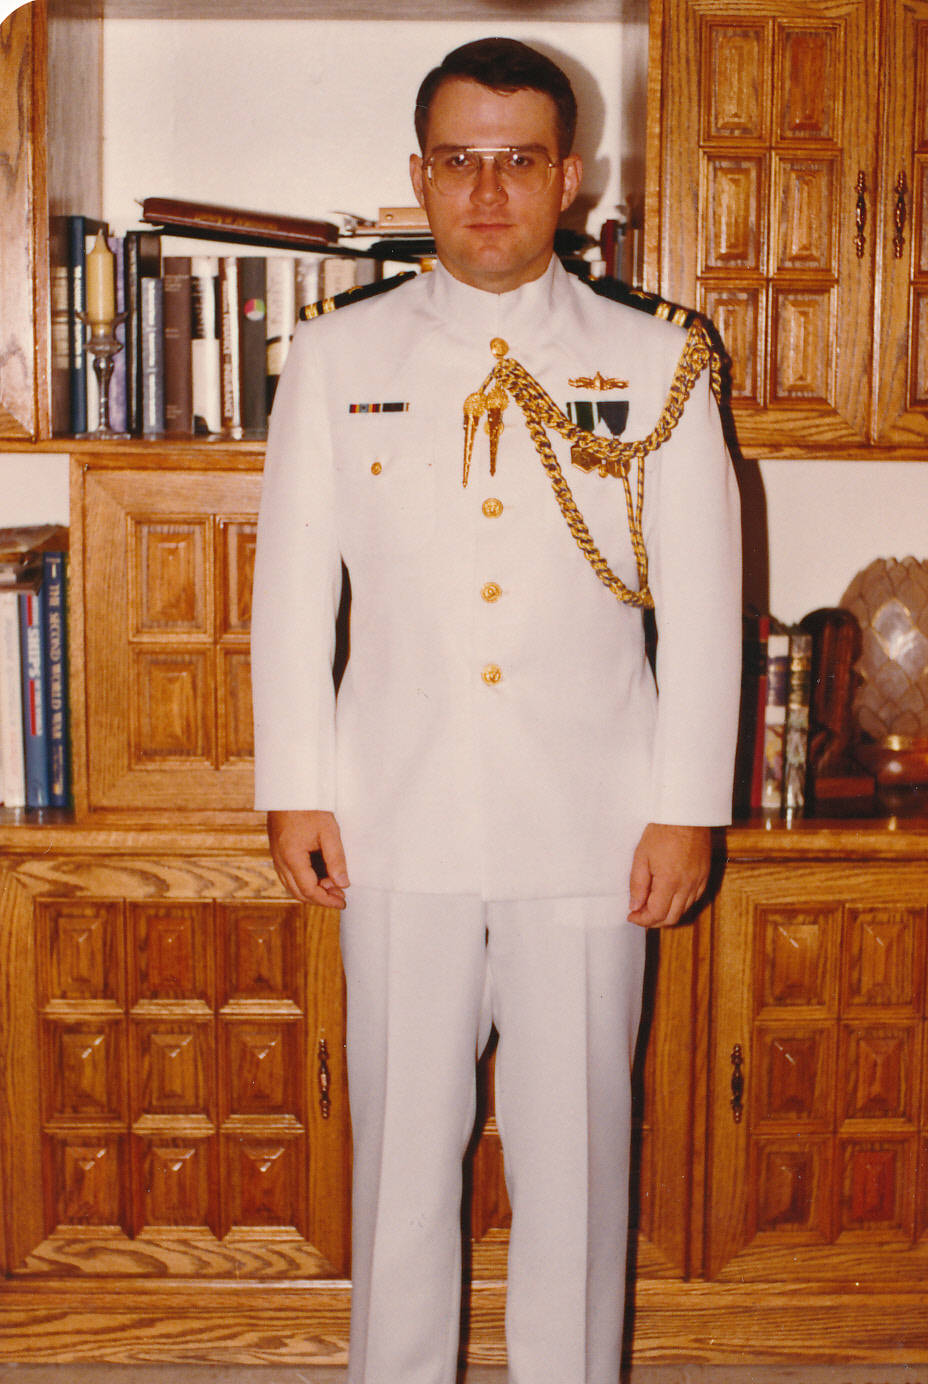 William Austin, father Kirstin, served in the U.S. Navy for several years.